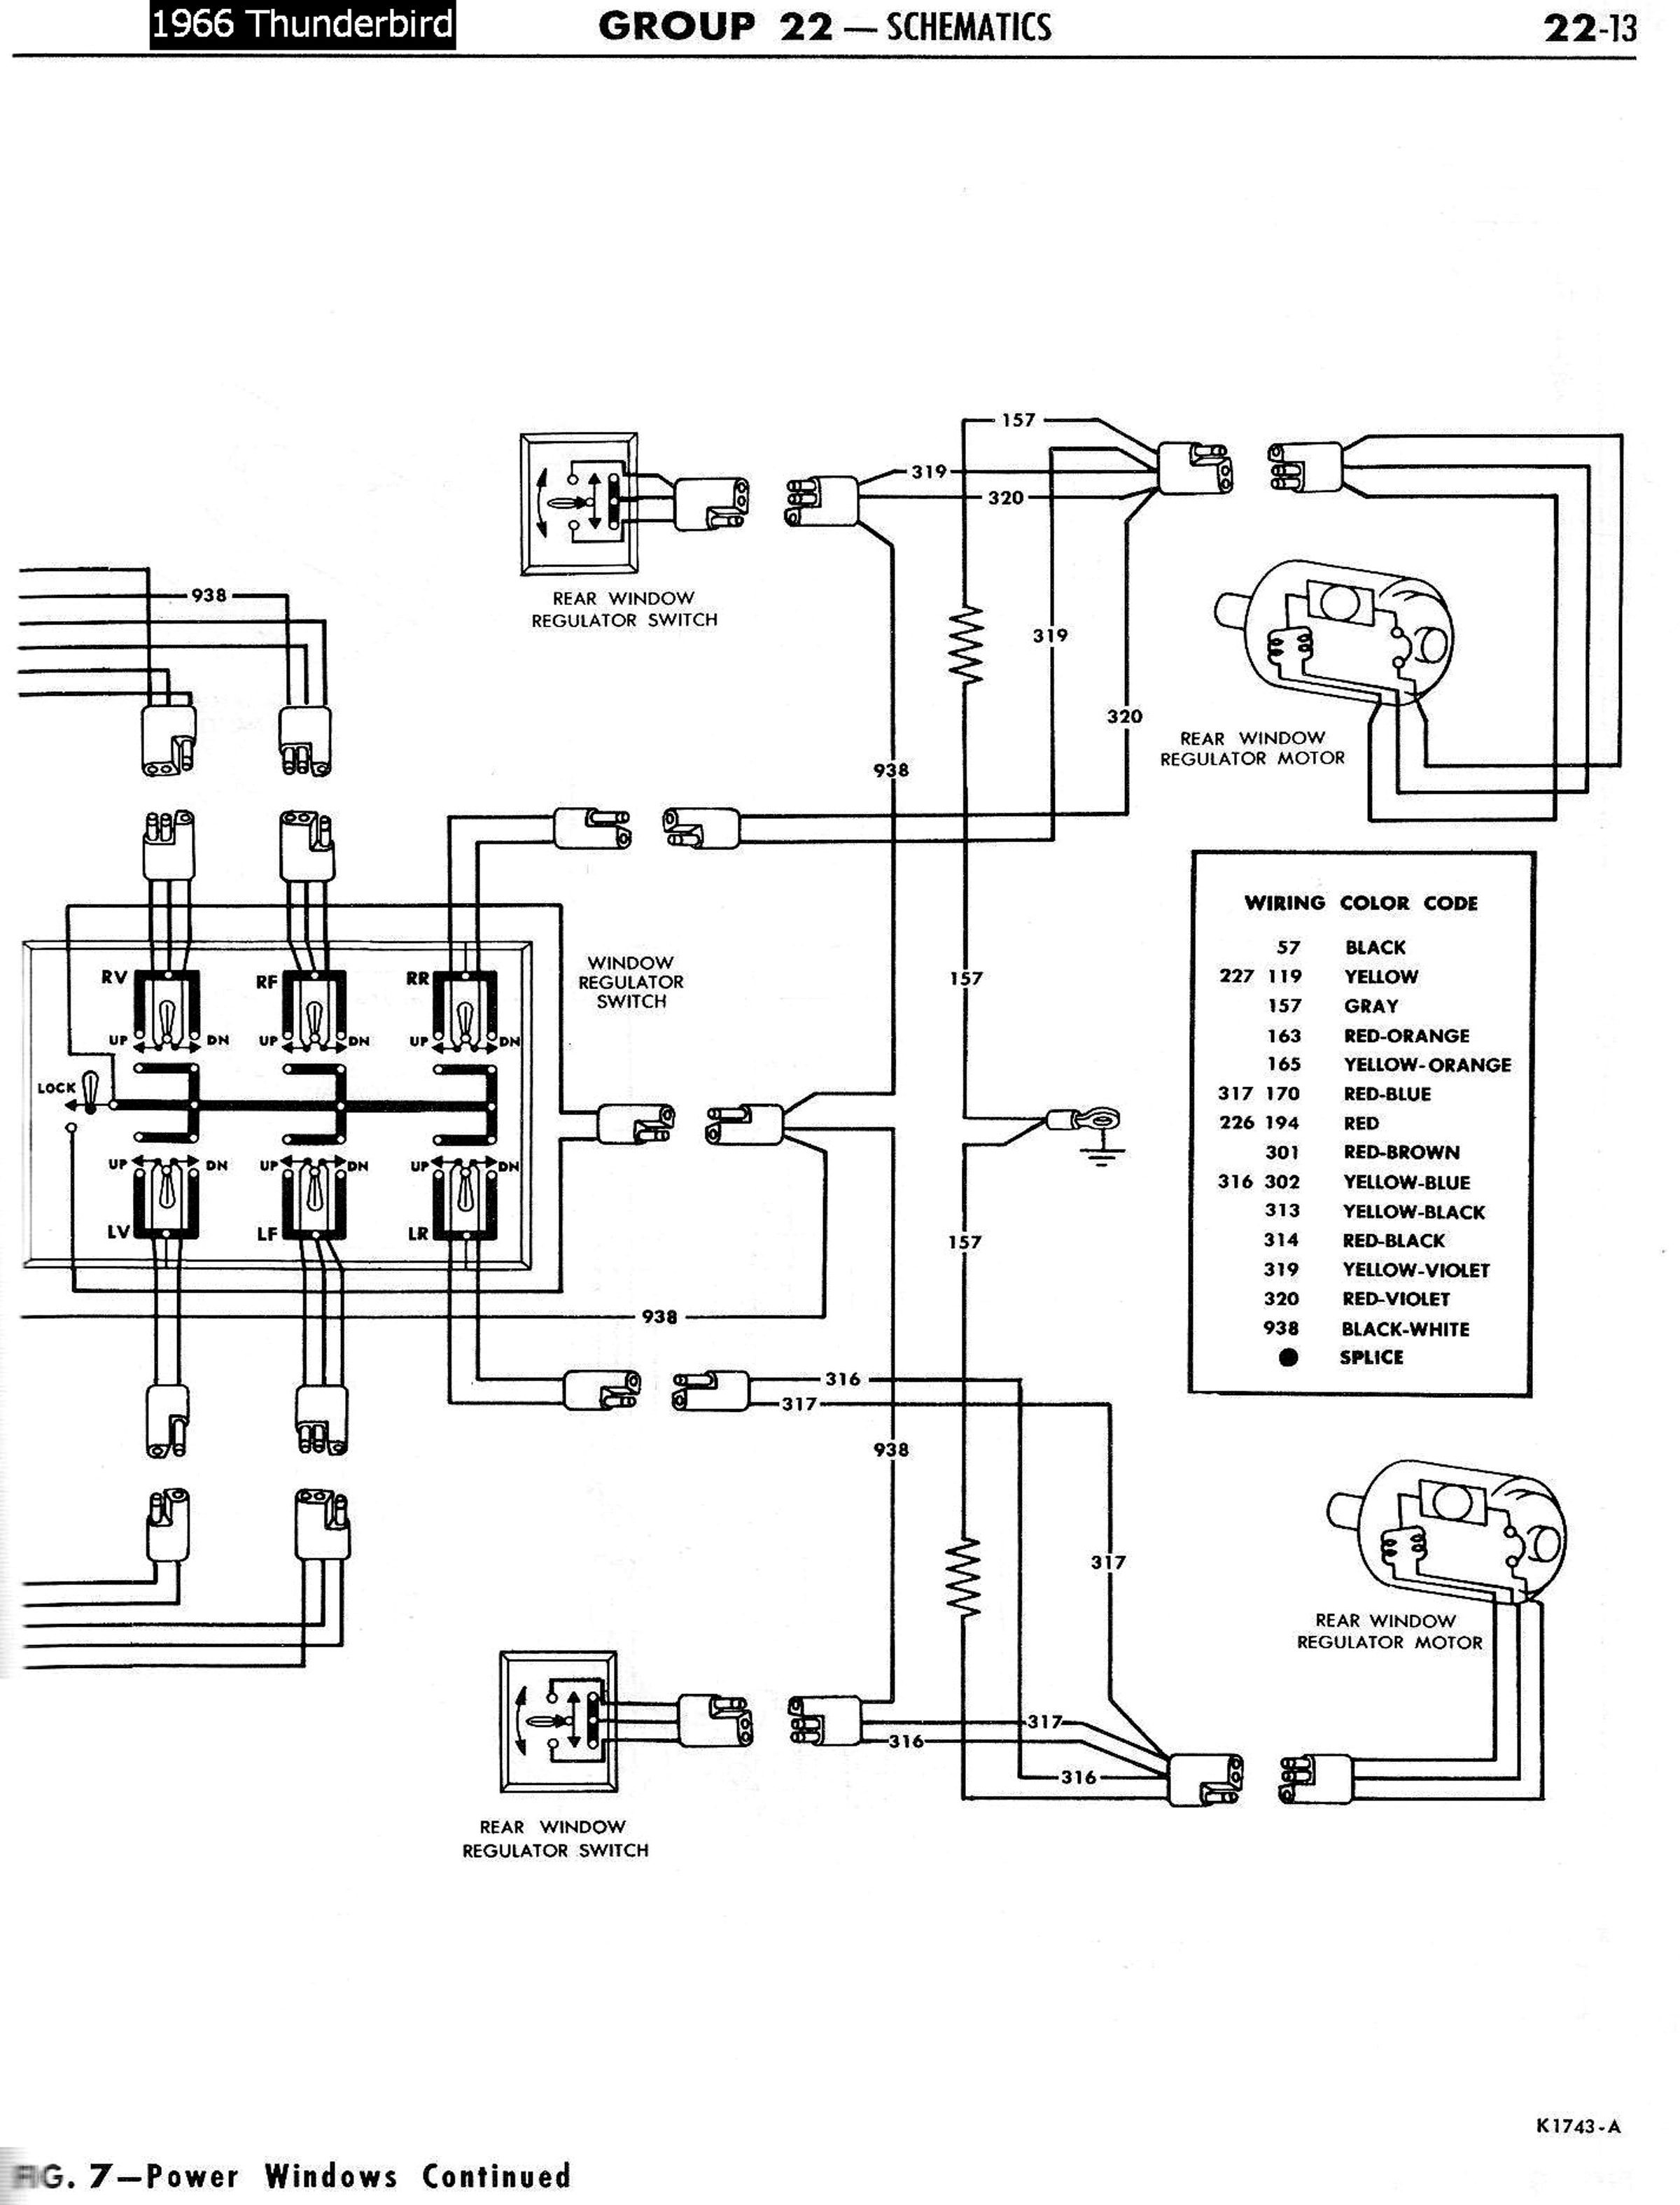 24 Volts Power Window Switch Wiring Diagram